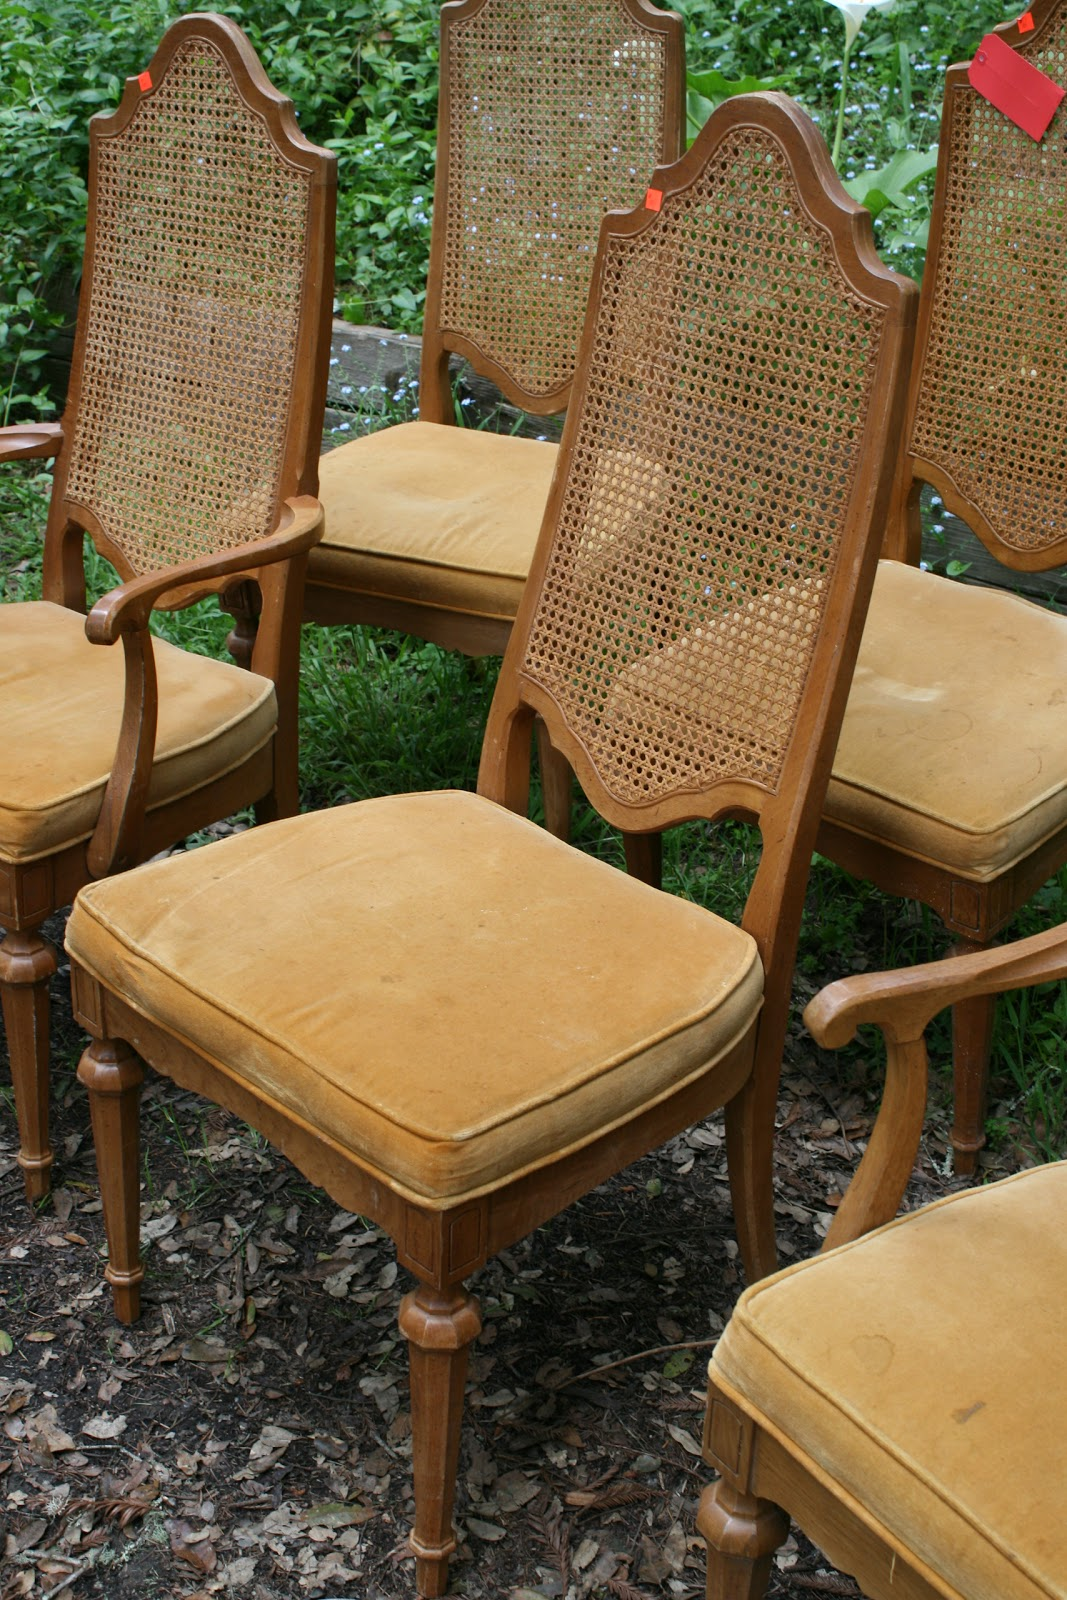 Find Of The Week: Vintage Cane Back Chairs